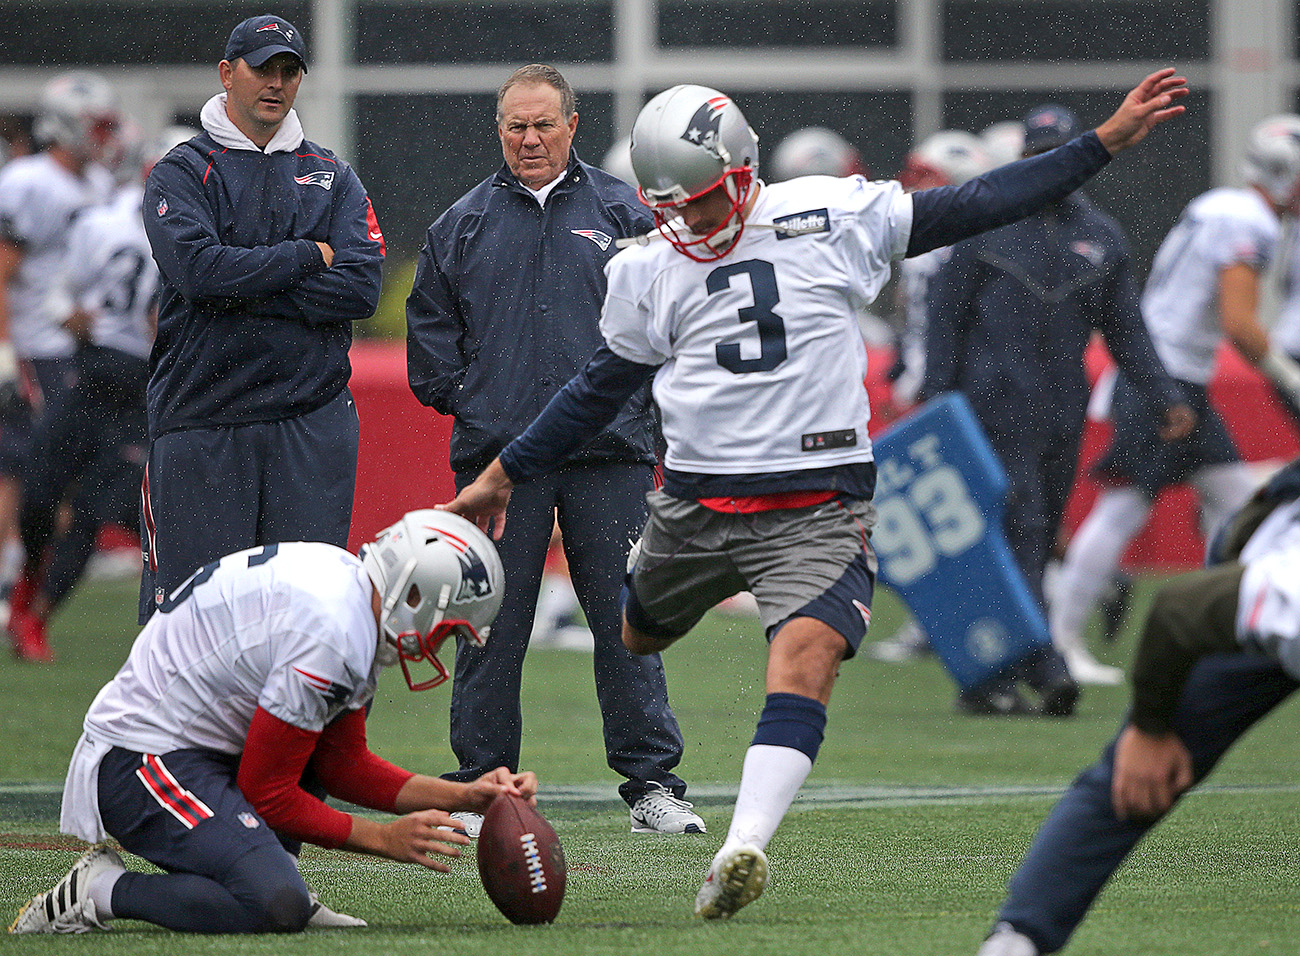 Stephen Gostkowski and Bill Belichick